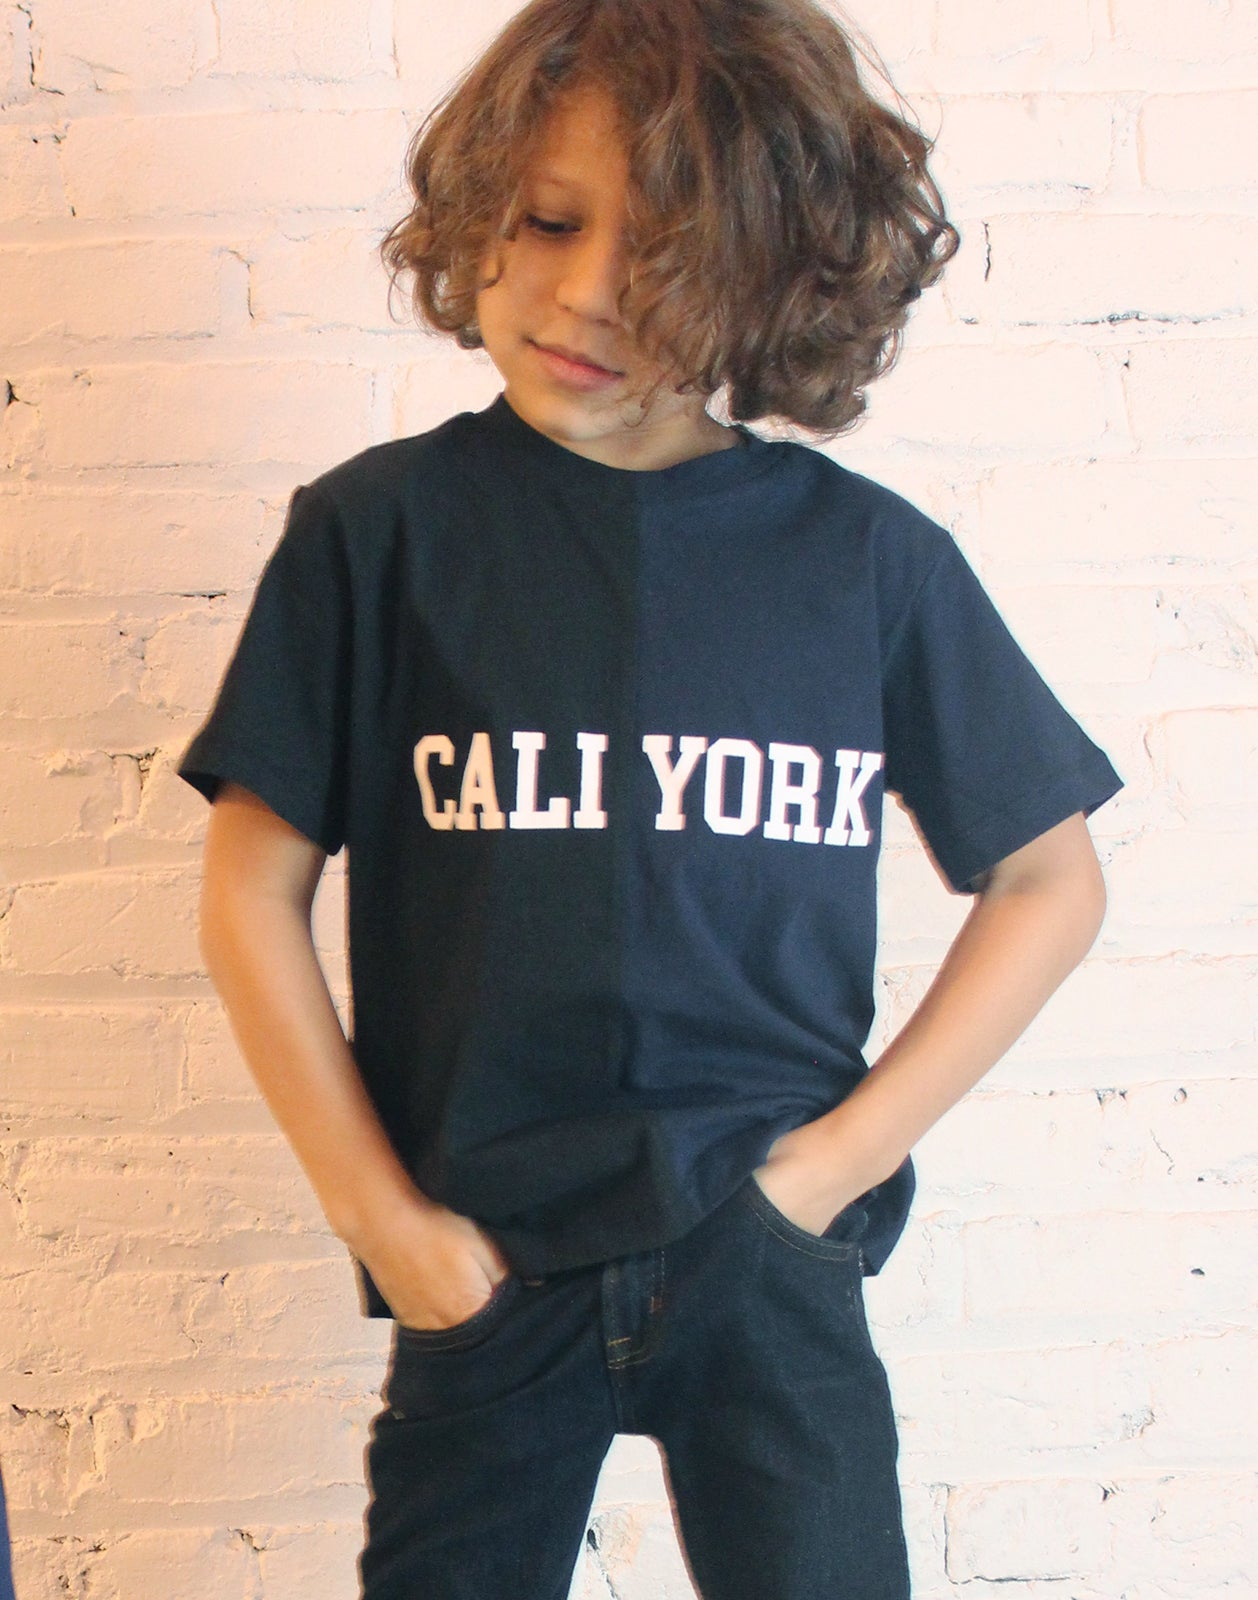 Kid's CaliYork Tee Shirt